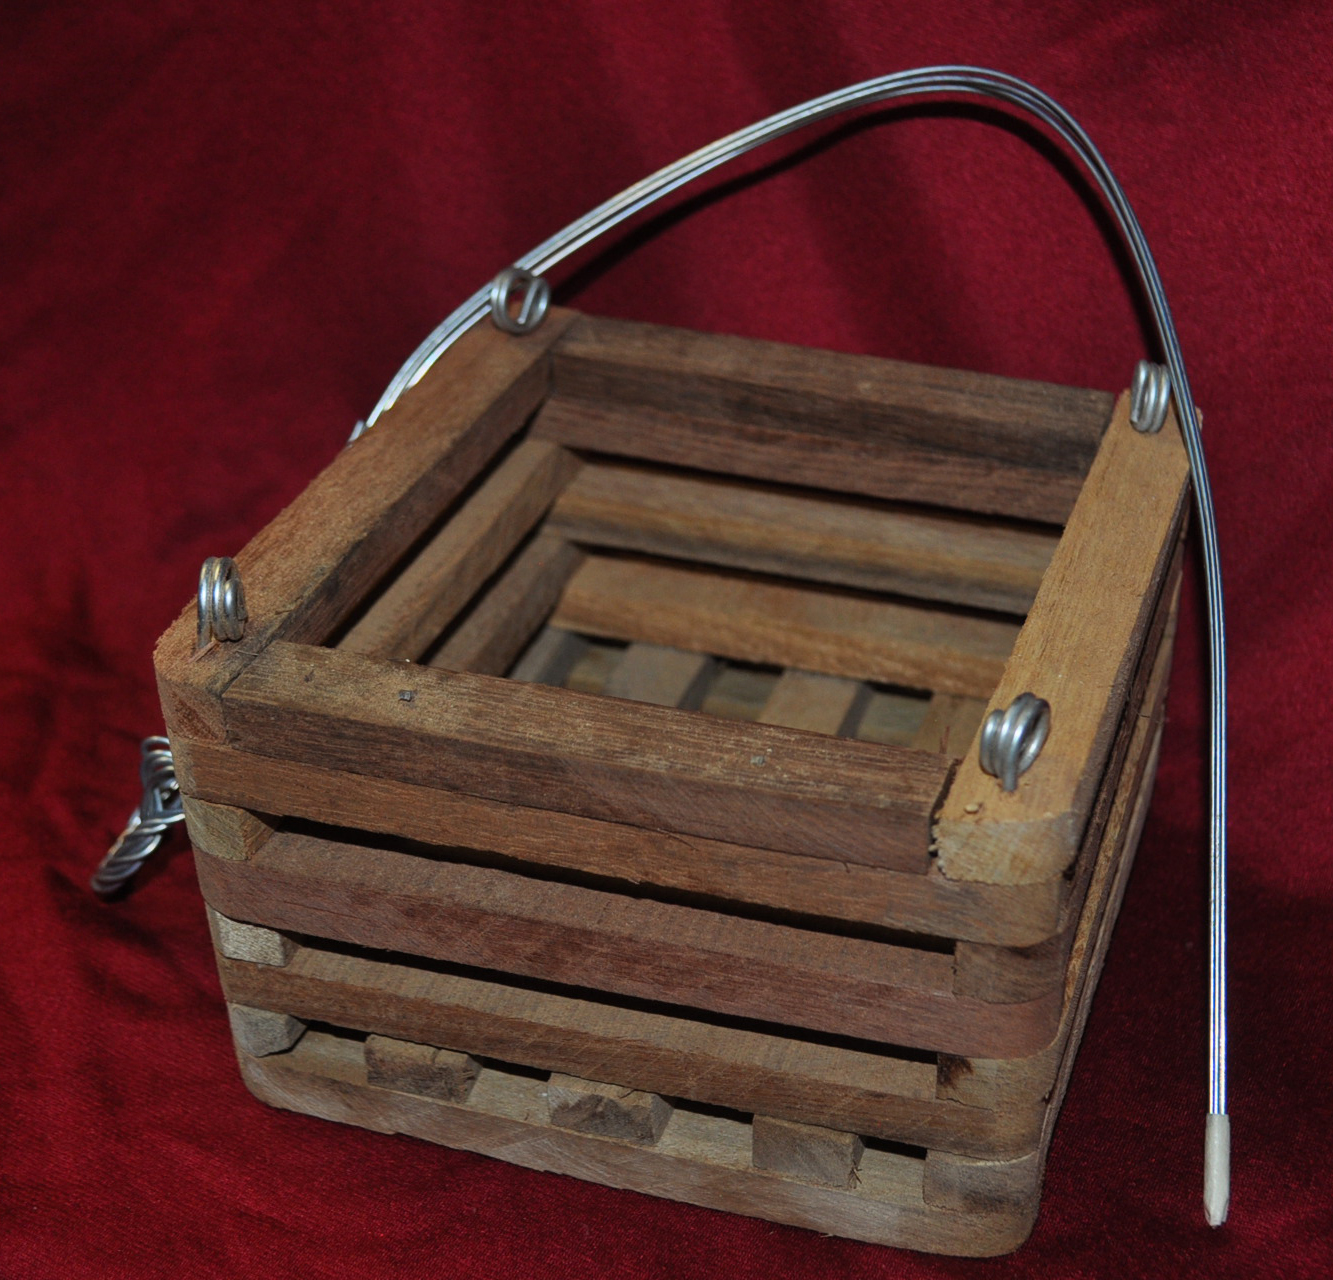 4 in wooden basket, with hanger